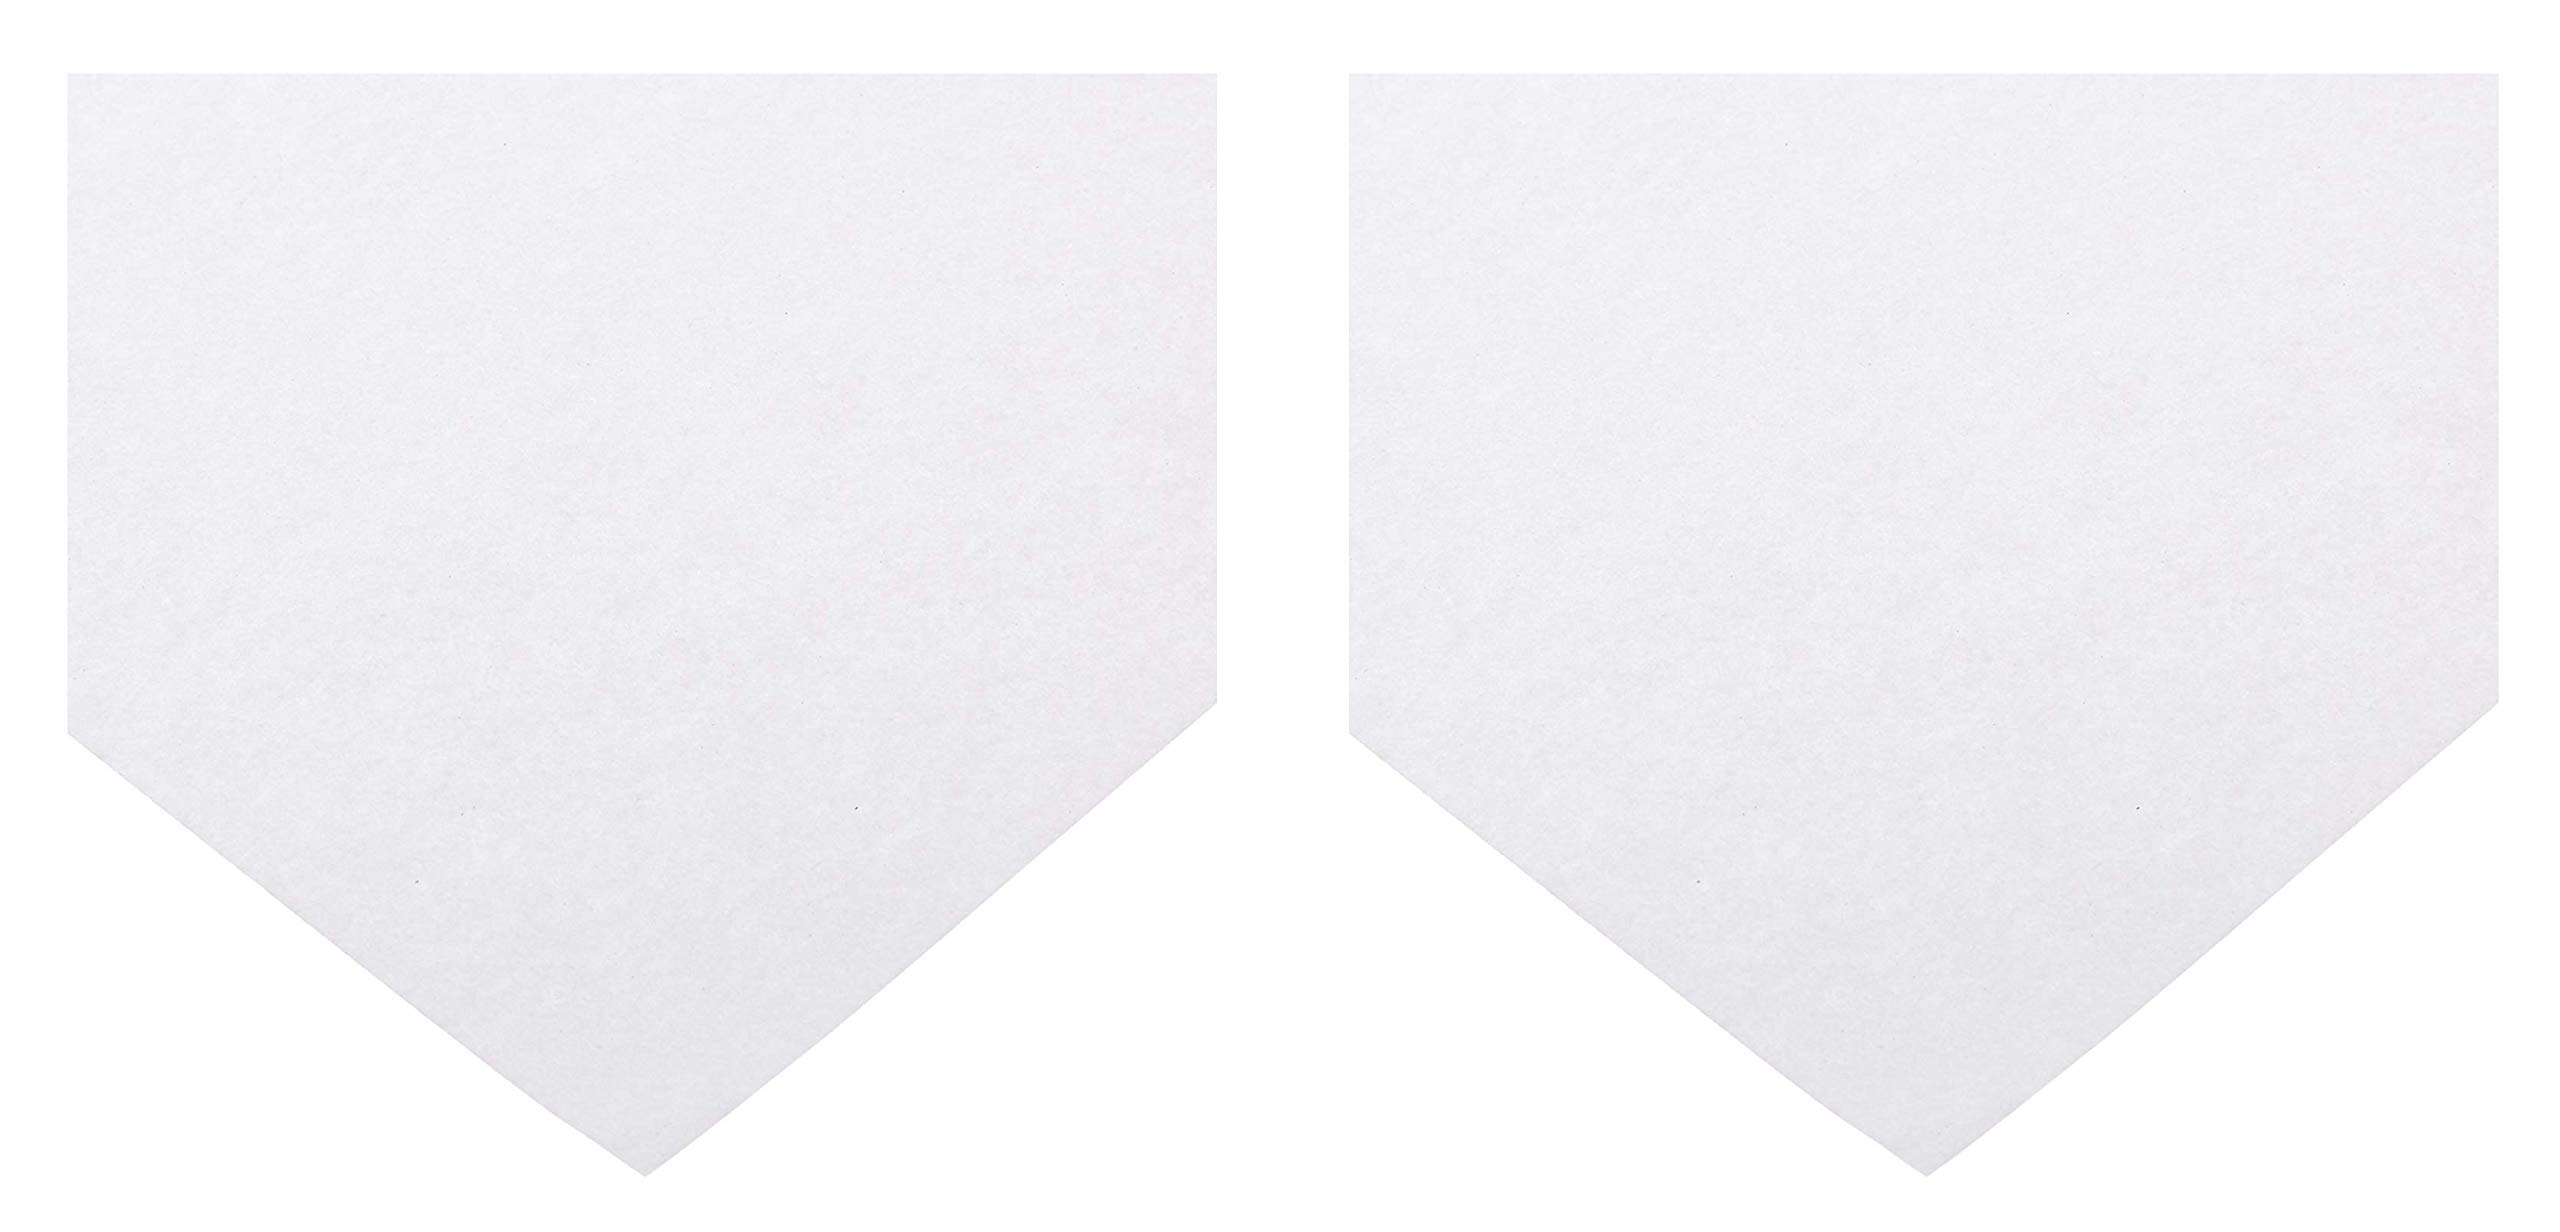 Sax Sulphite Drawing Paper, 90 lb, 9 x 12 Inches, Extra-White, Pack of 500 (2-Pack)